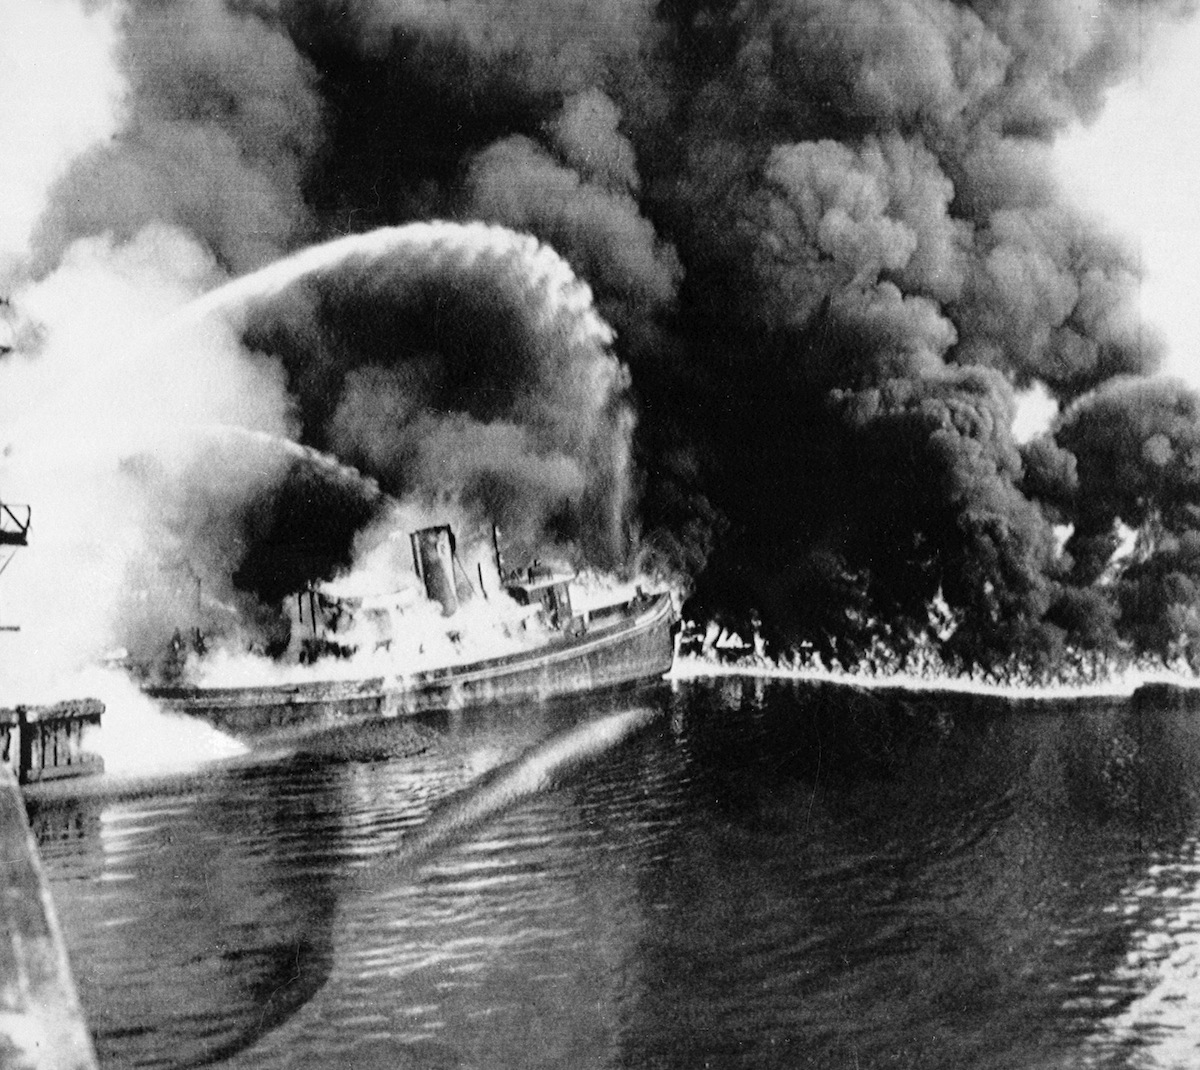 A fire tug fights flames on the Cuyahoga River near downtown Cleveland on June 25, 1952.